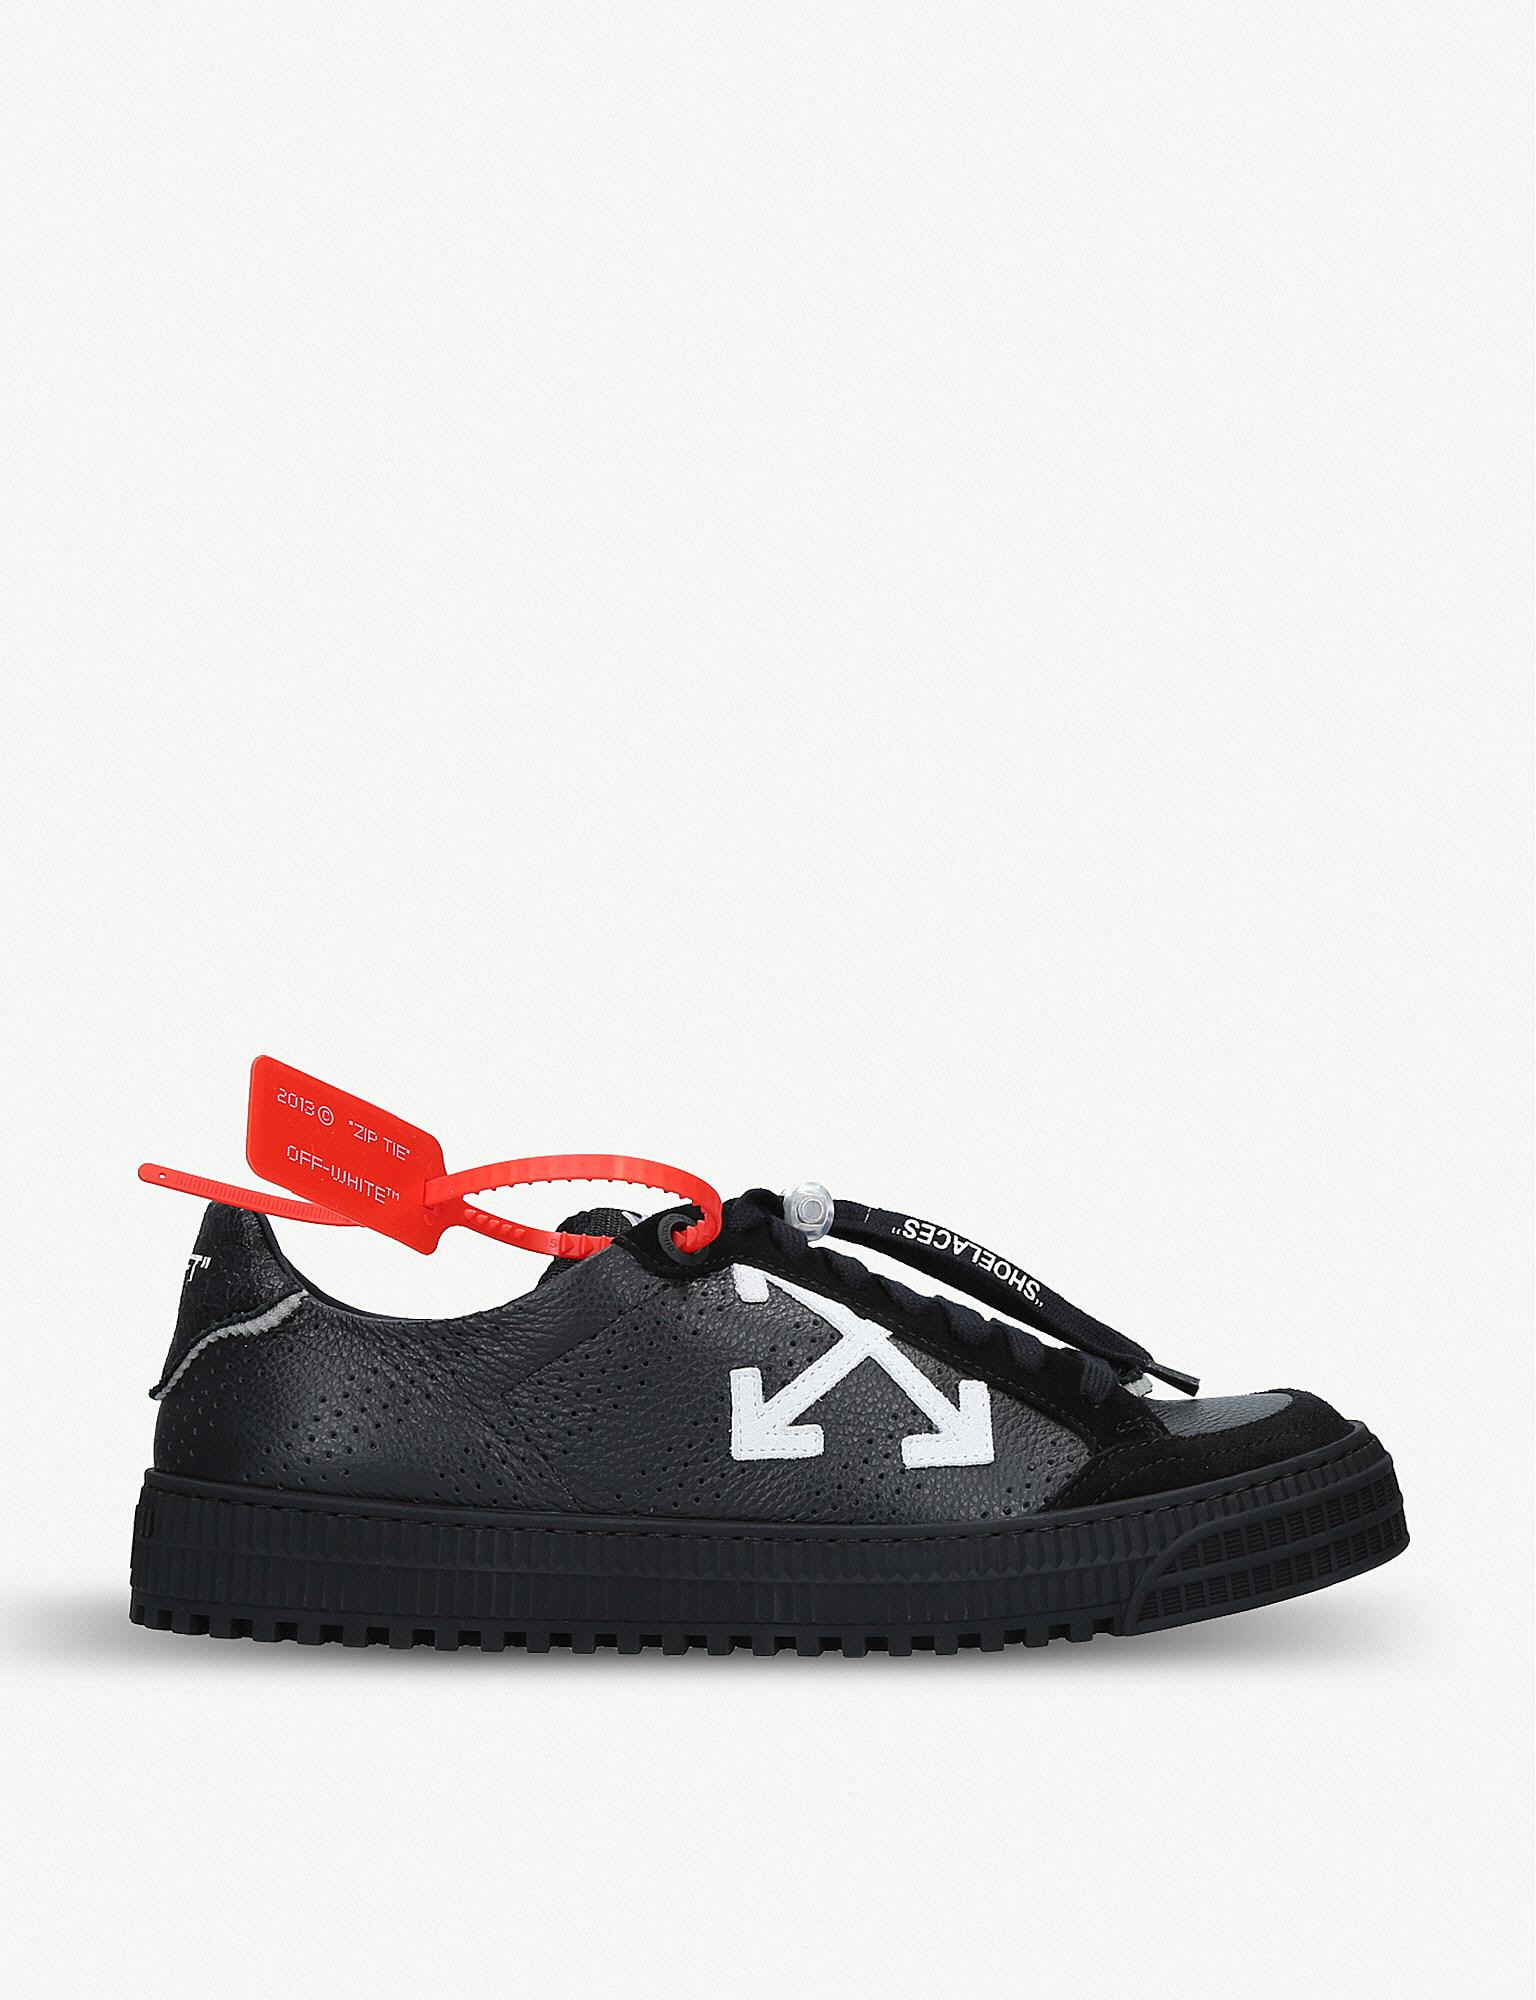 8f17cdae69701 Lyst - Off-White c o Virgil Abloh Polo 3.0 Leather Trainers for Men